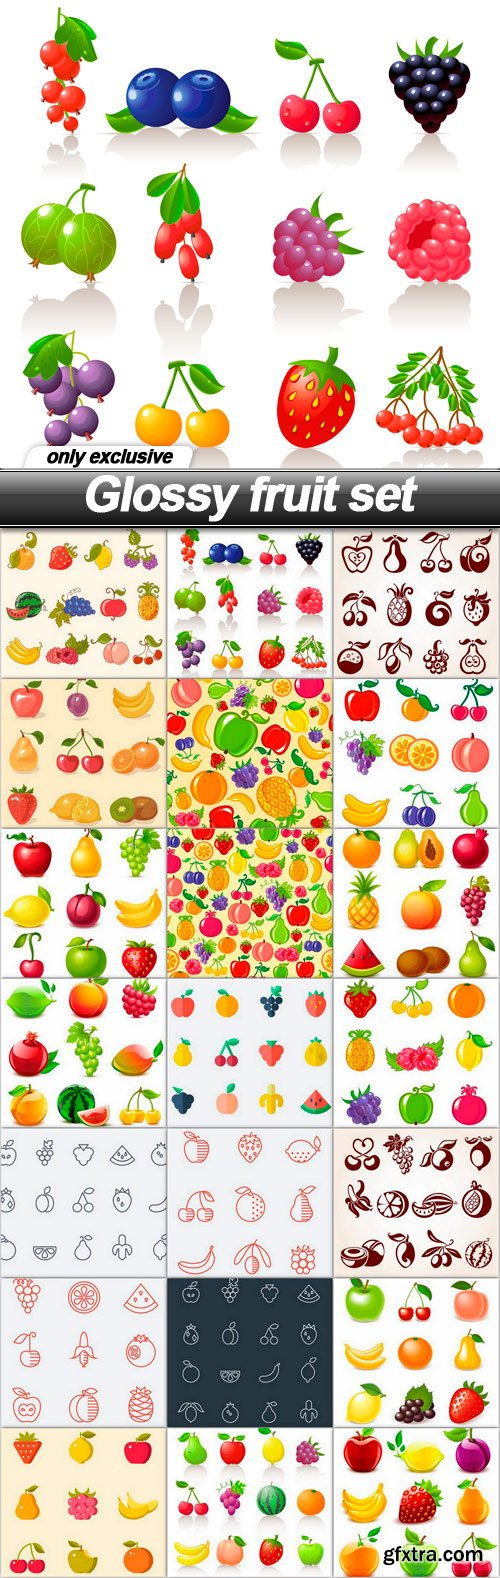 Glossy fruit set - 21 EPS